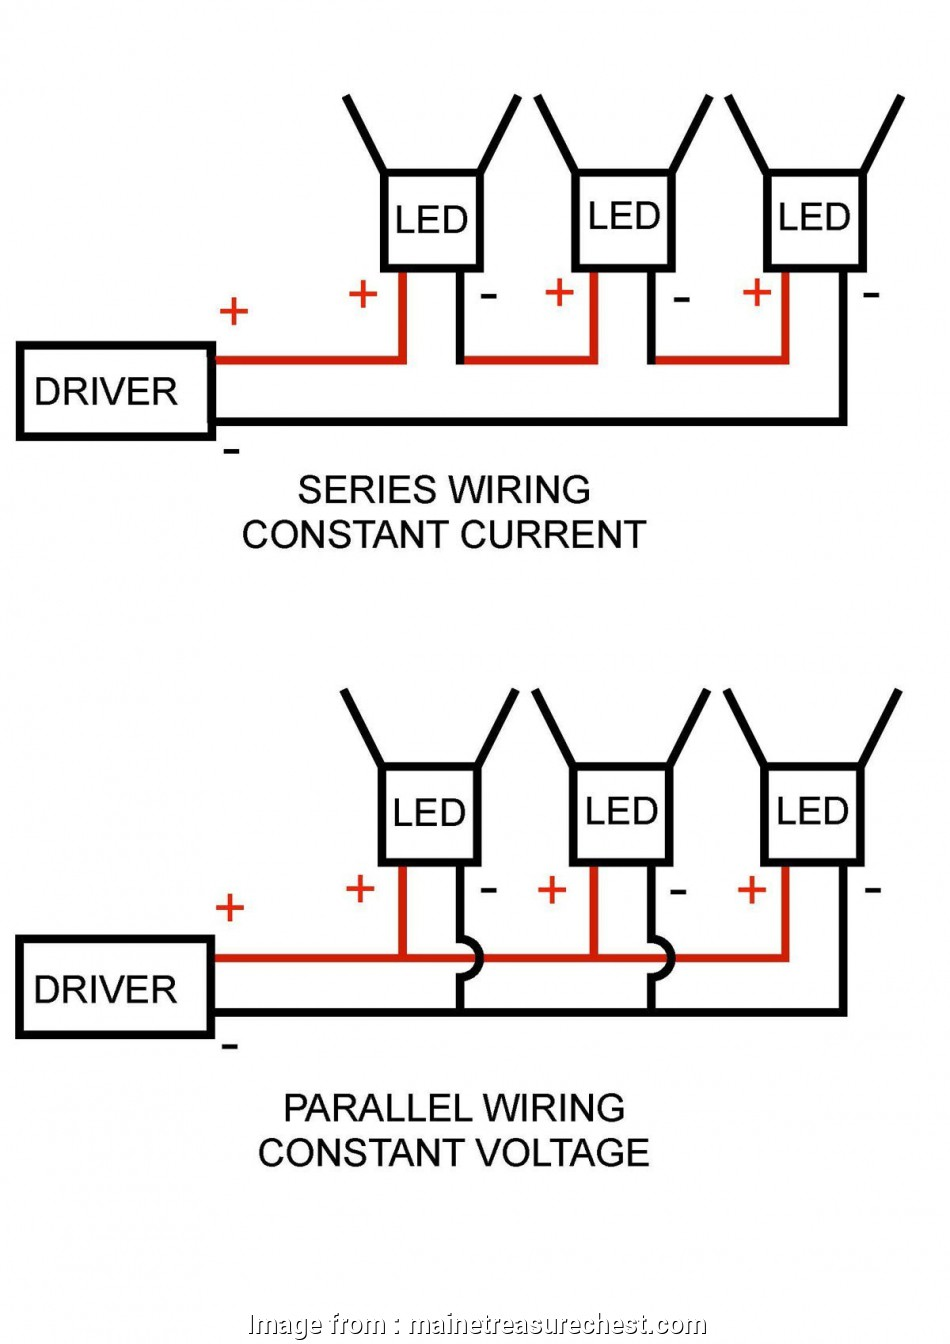 Wiring Recessed Lights Parallel Diagram Professional